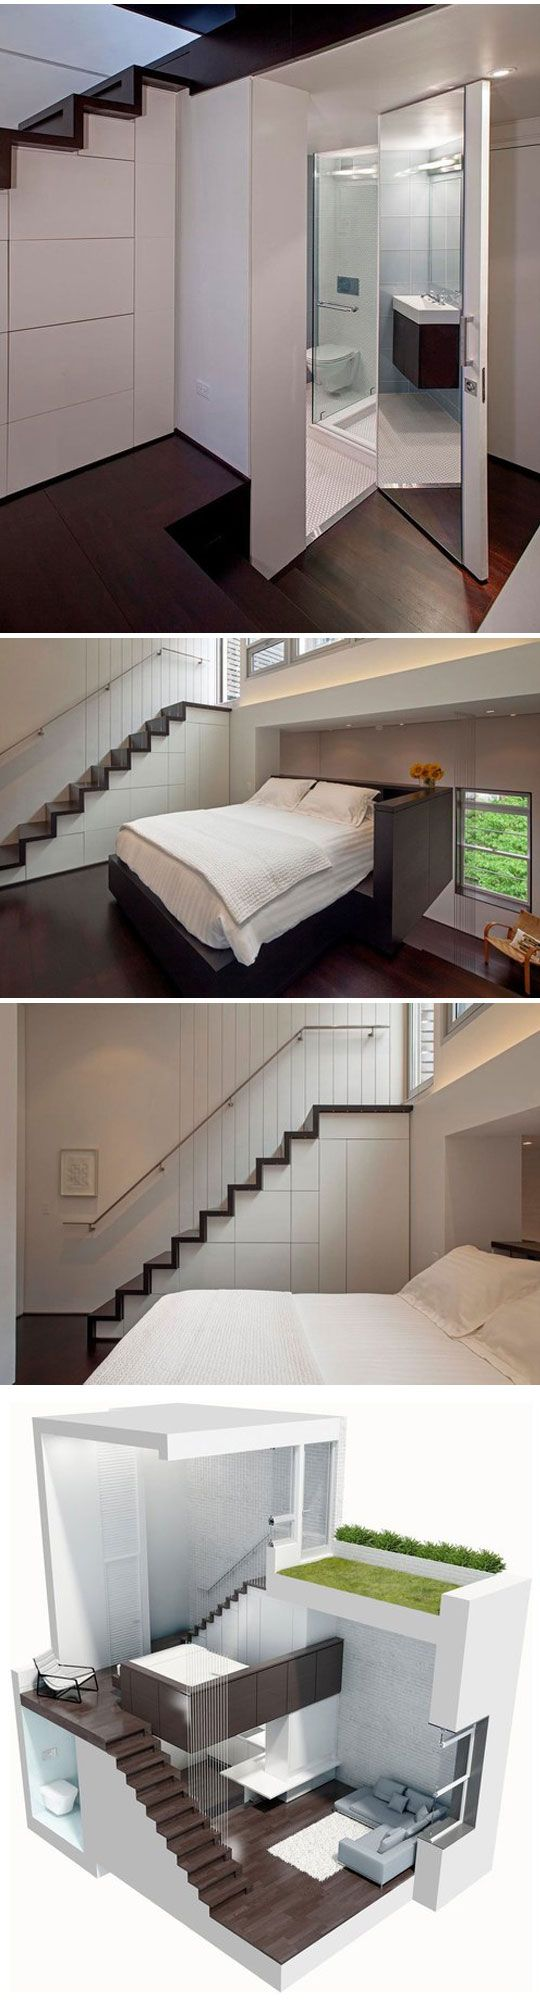 Great use of space and minimalist approach. This would be a fantastic guest house